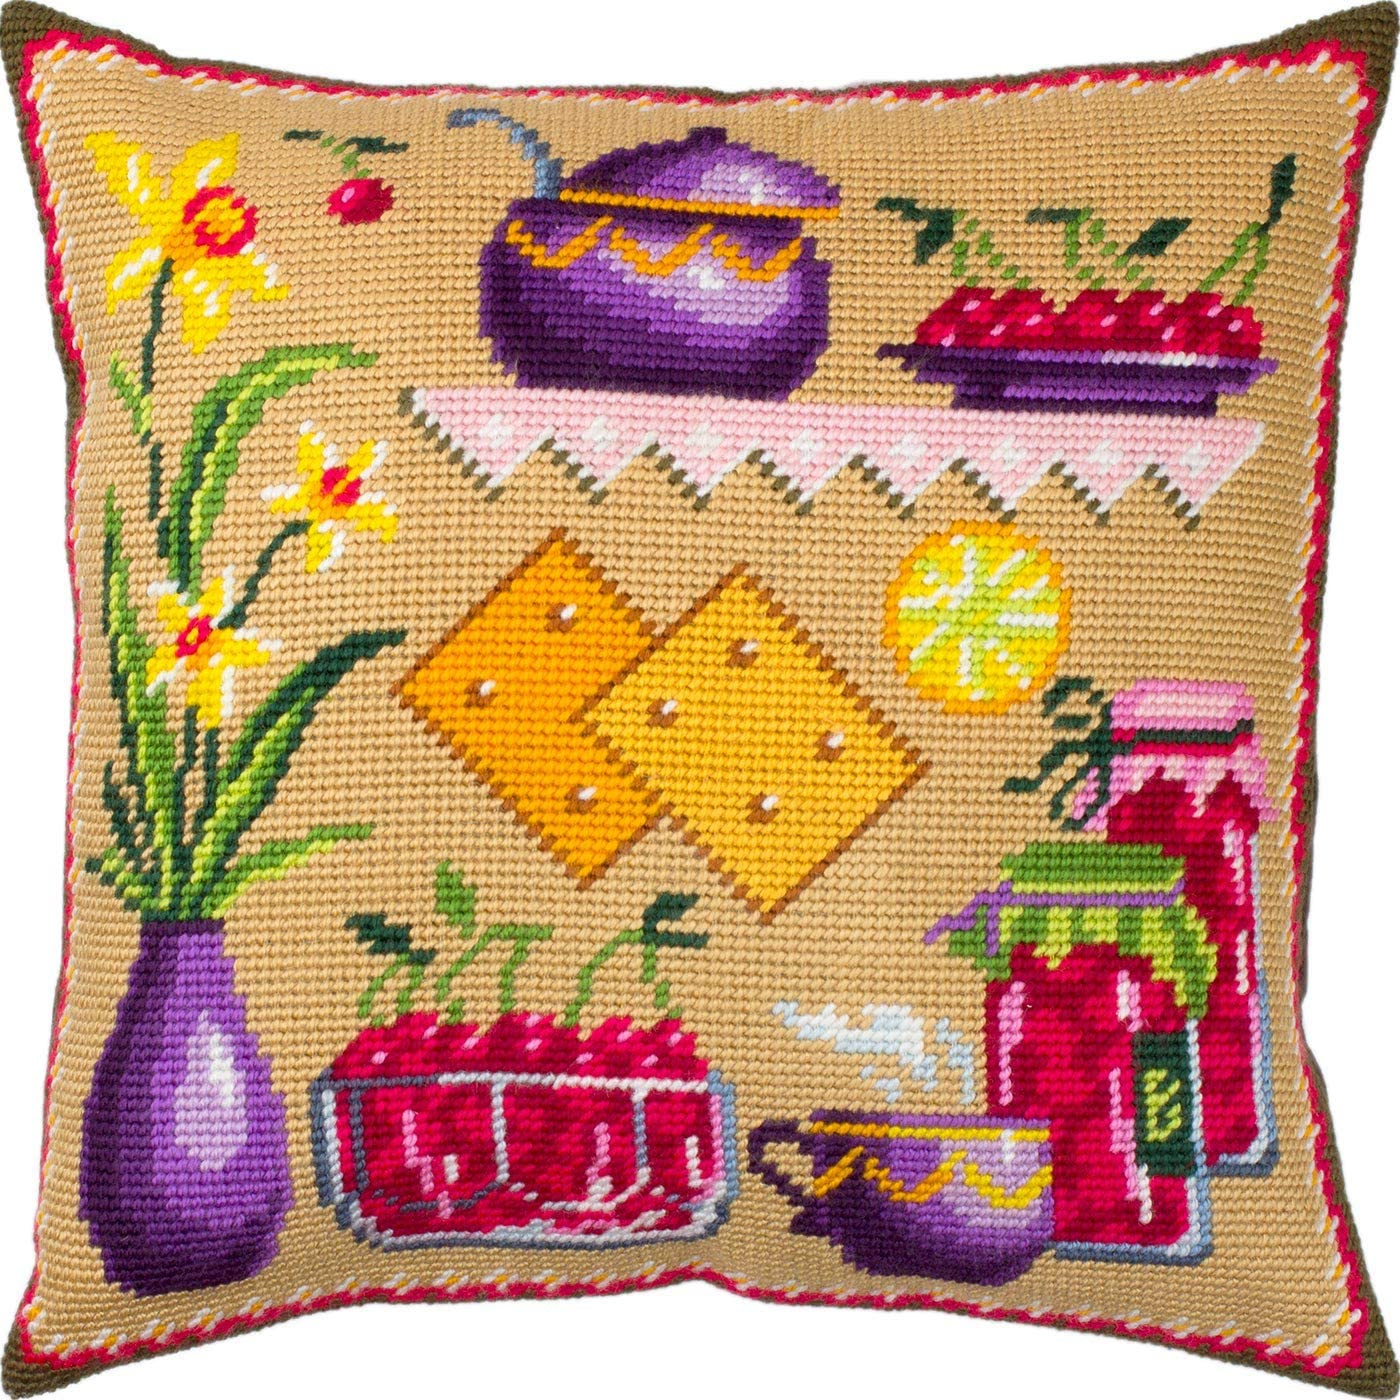 Cherry Jam. Needlepoint Kit. Throw Pillow 16×16 Inches. Printed Tapestry Canvas, European Quality